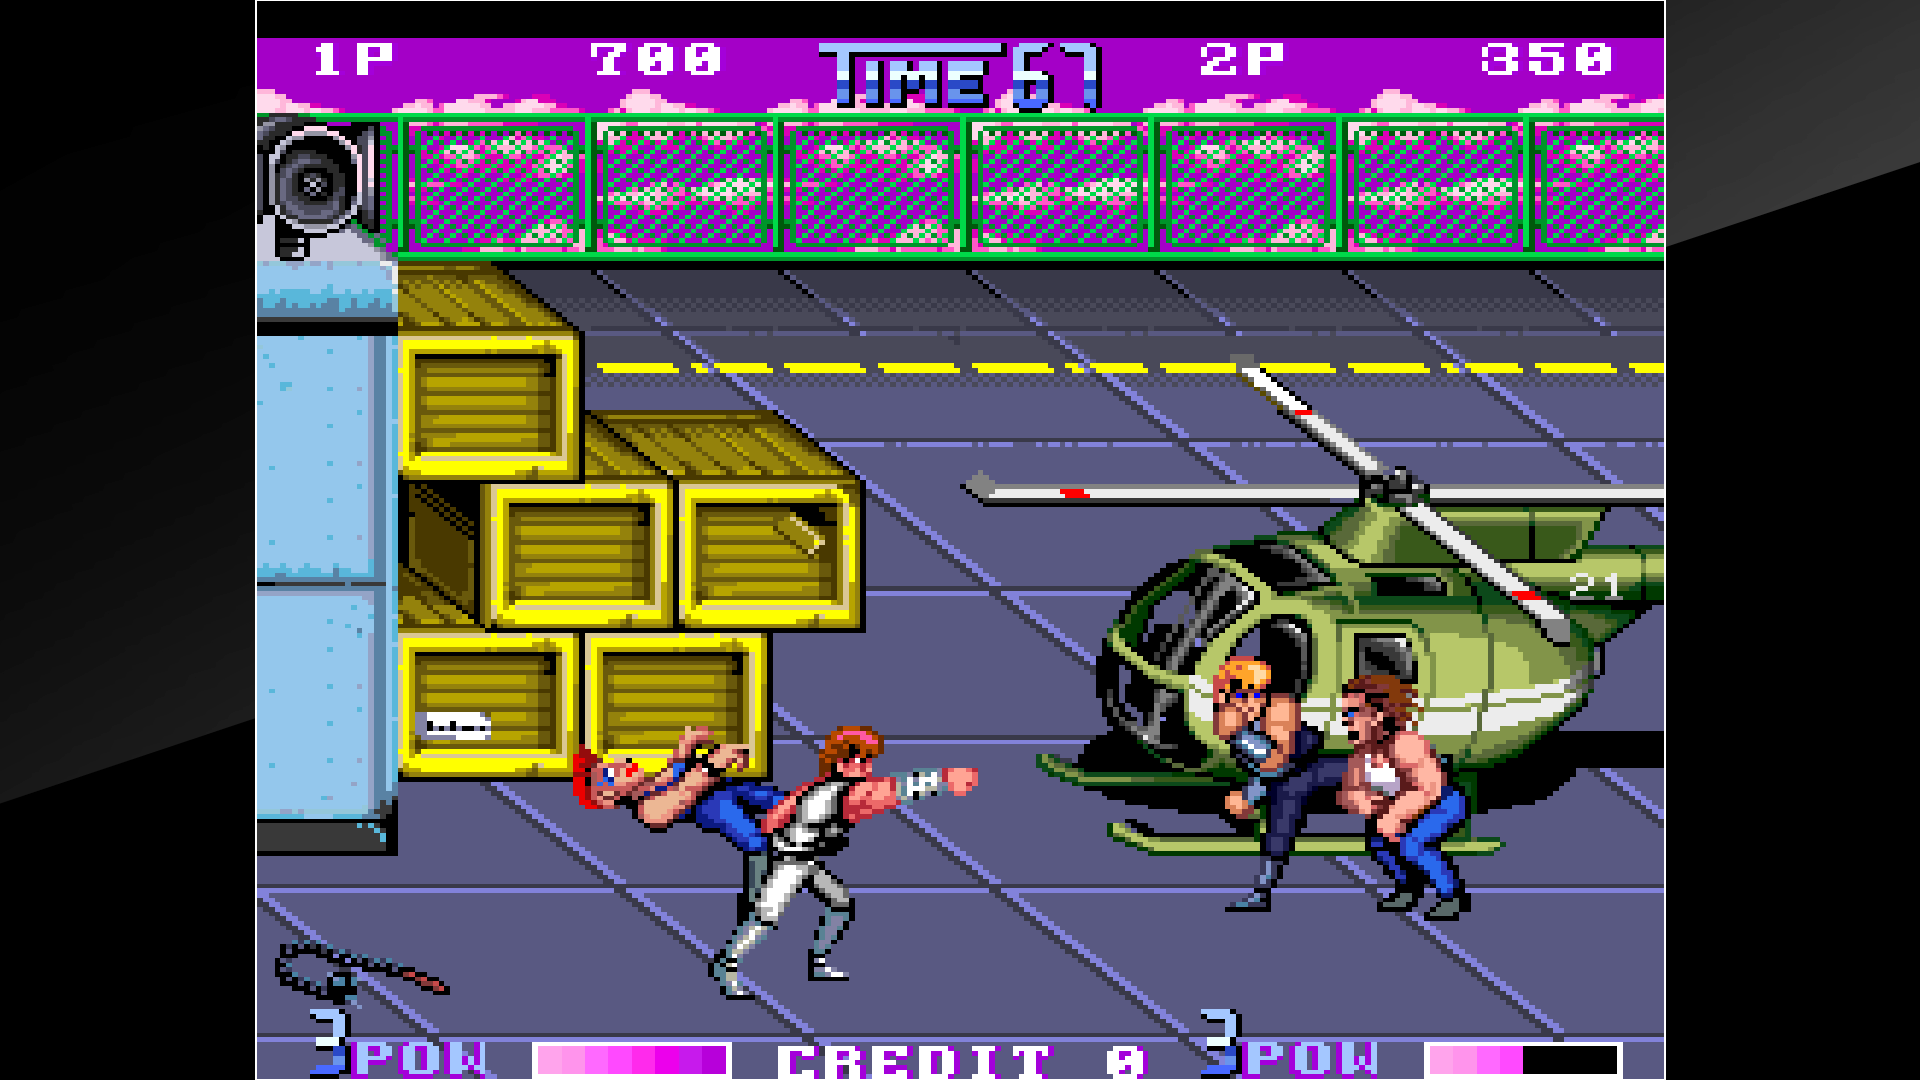 Most Viewed Double Dragon Ii The Revenge Wallpapers 4k Wallpapers